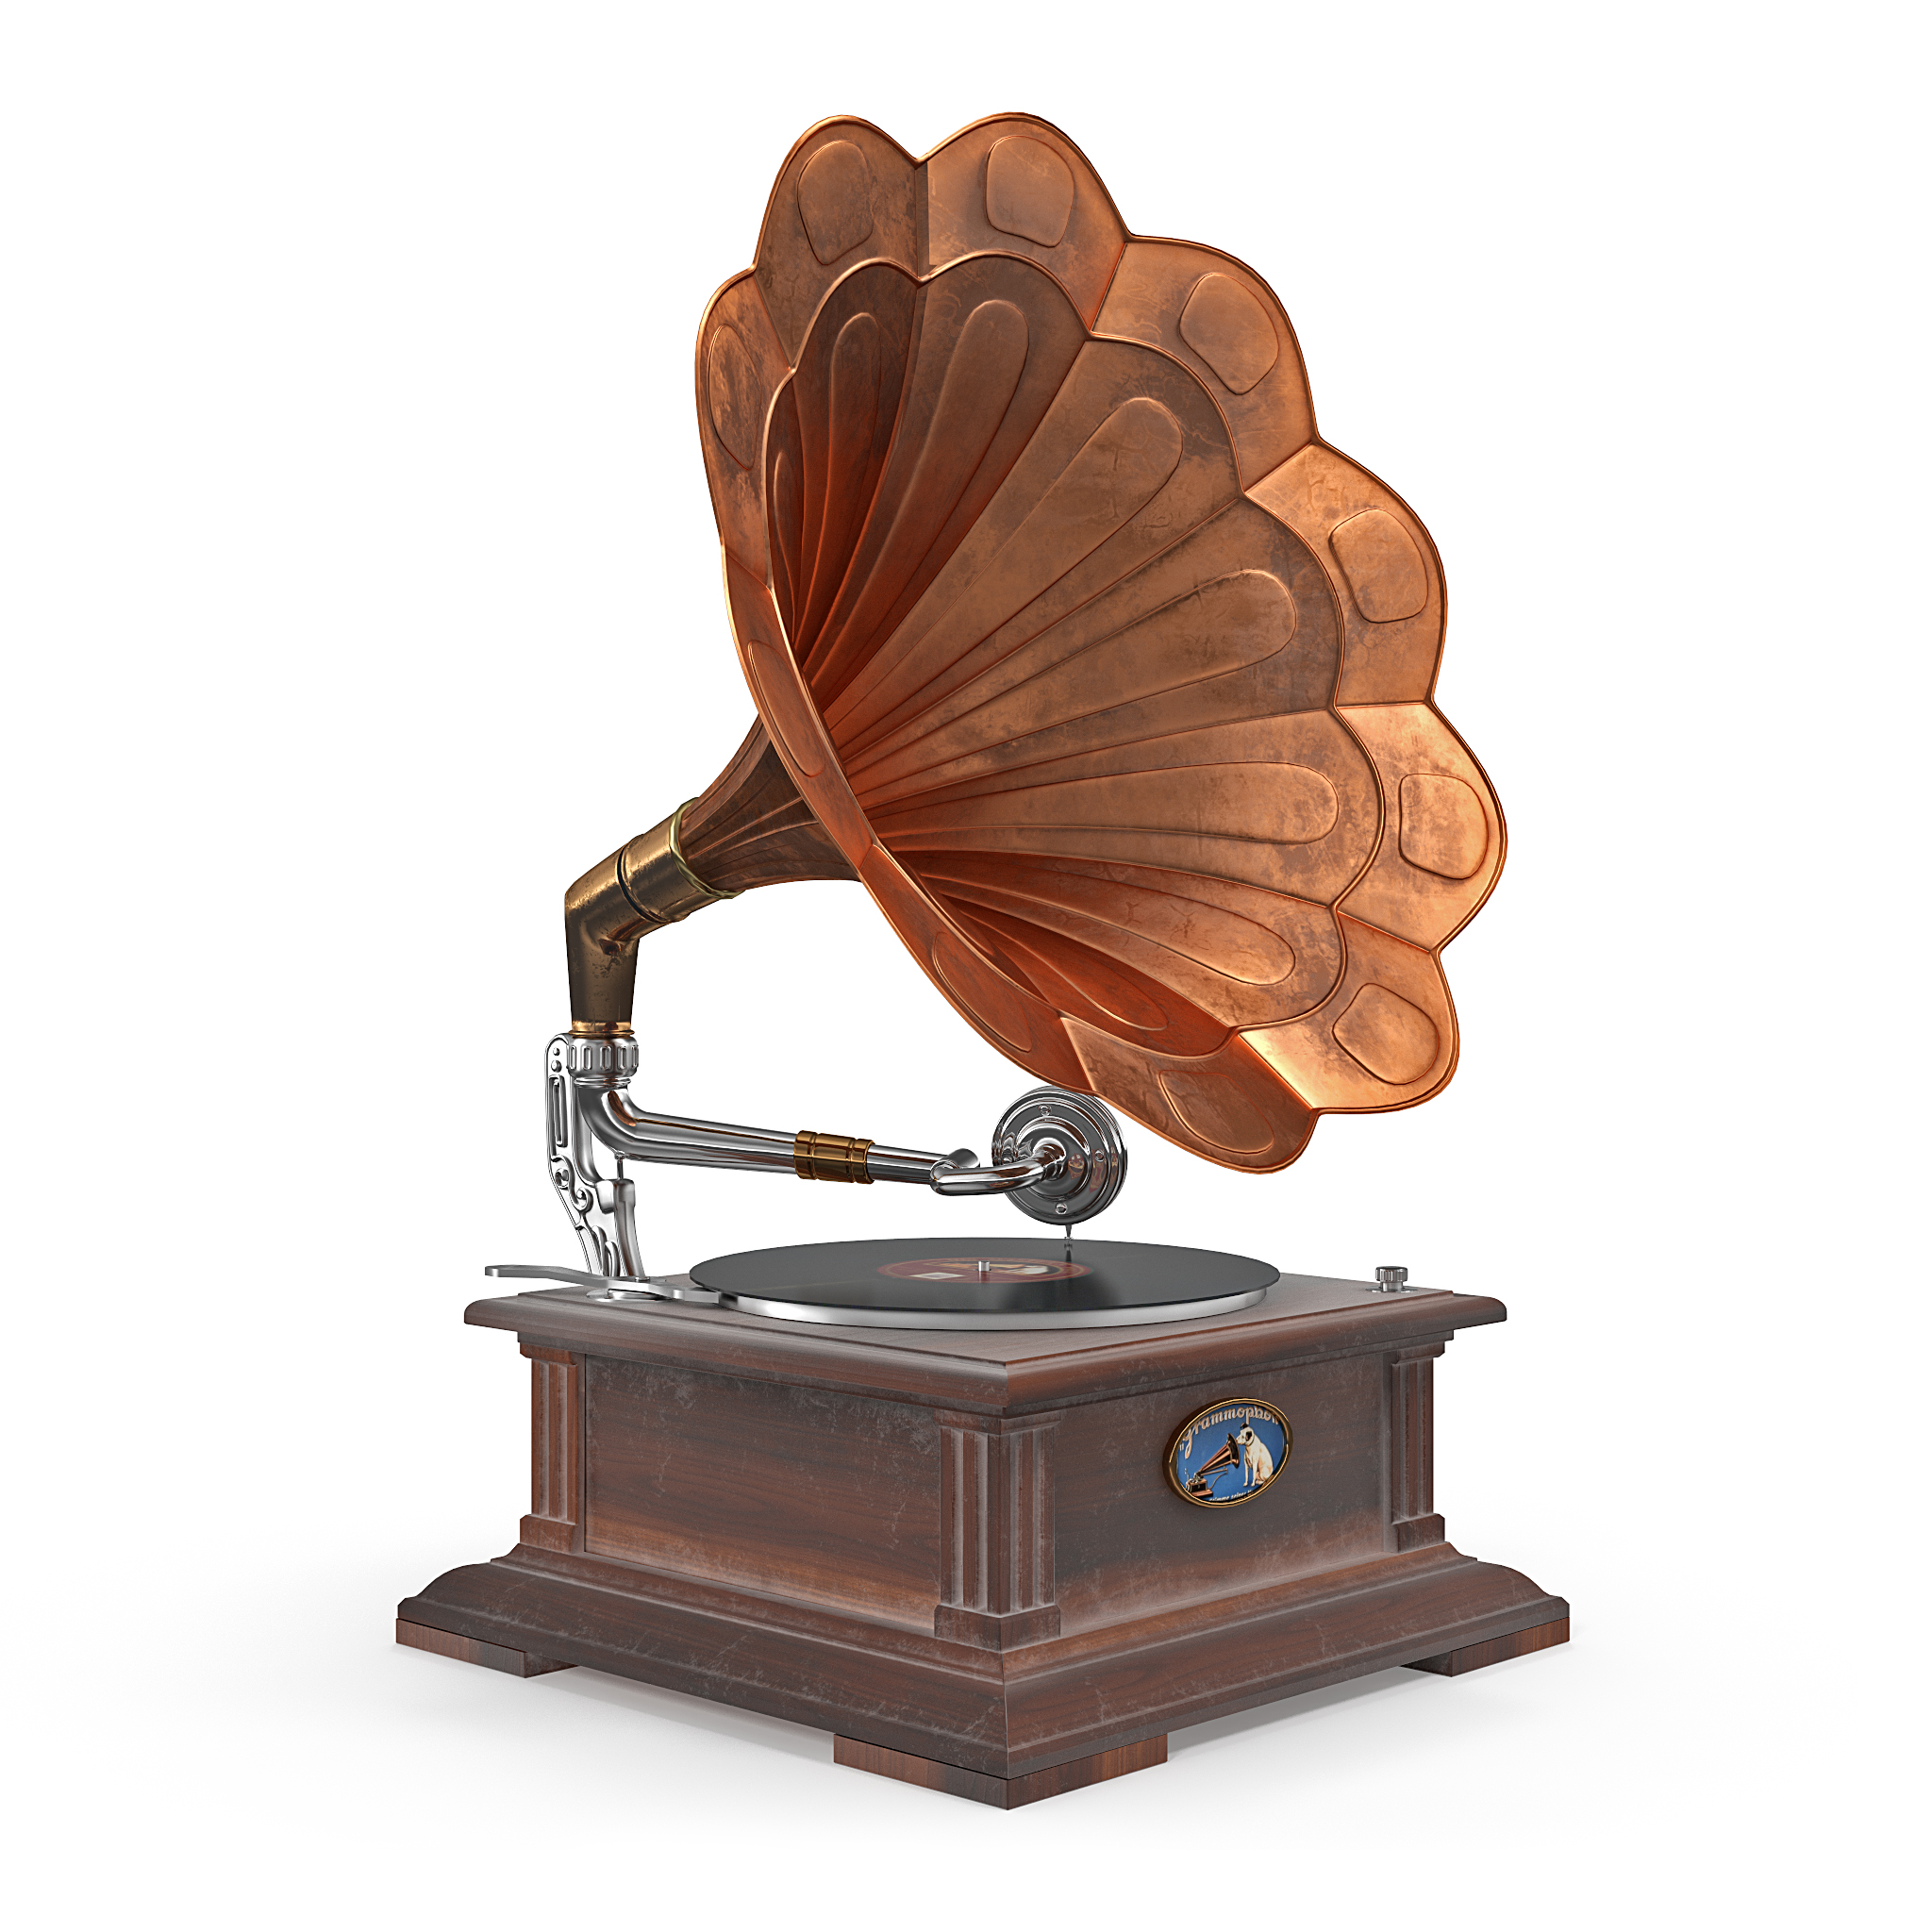 Old Classical Phonograph 3d Model By Robertkorsa 3docean